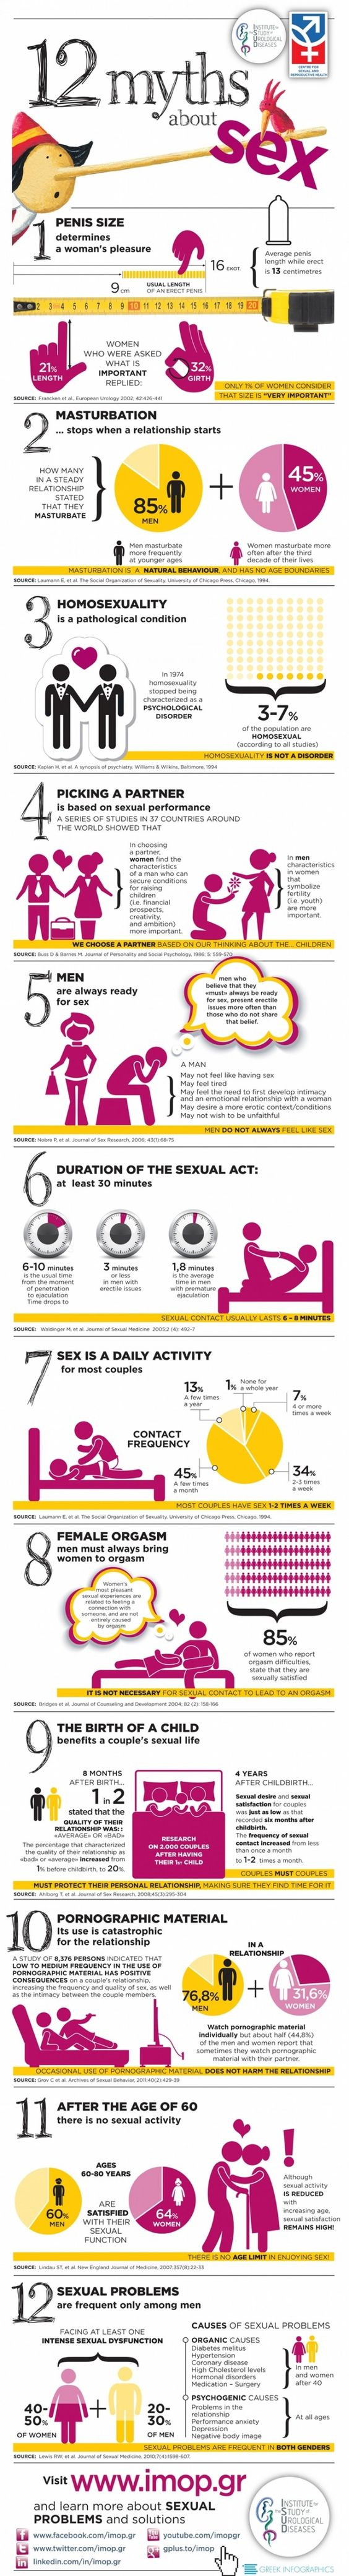 12 Myths About Sex [infographic]: